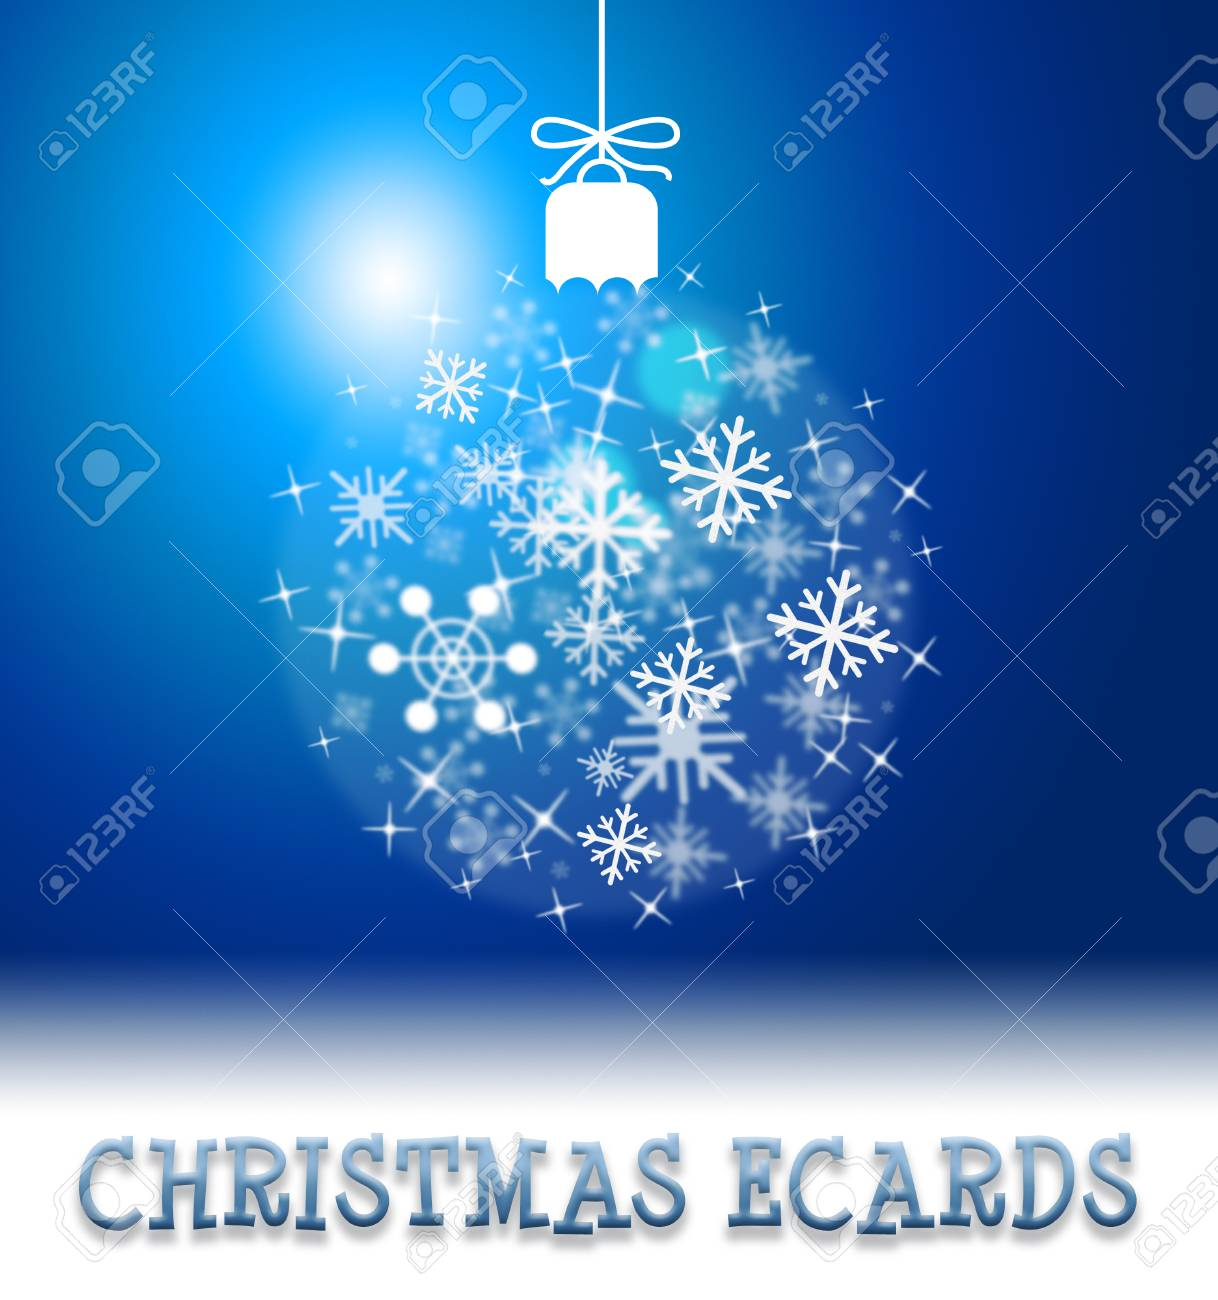 Christmas Ecards Ball Decoration Shows Xmas Card Online Greeting